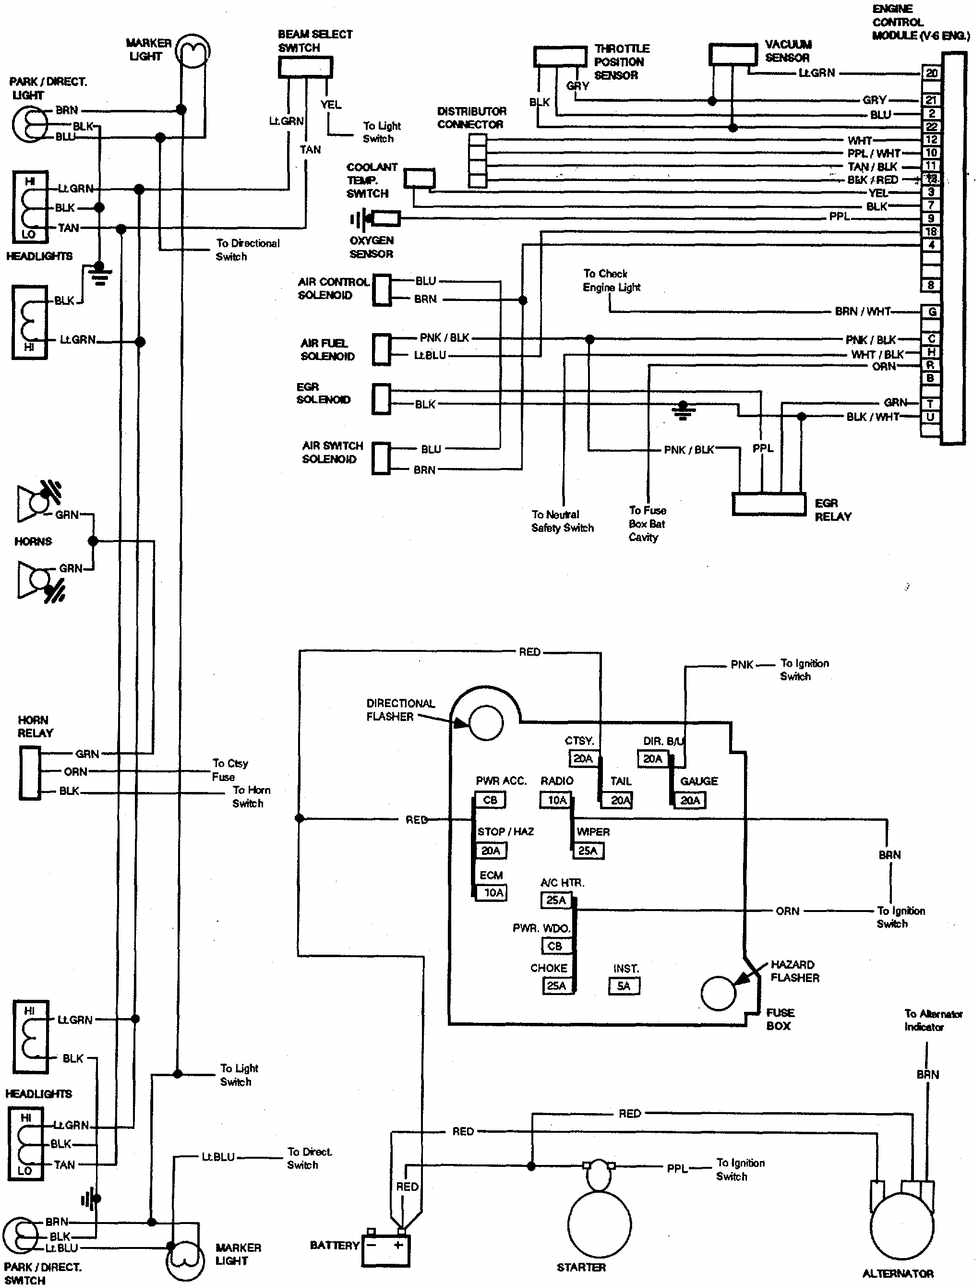 87 Chevy Dual Tank Wiring Diagram on cadillac deville radio wiring diagram